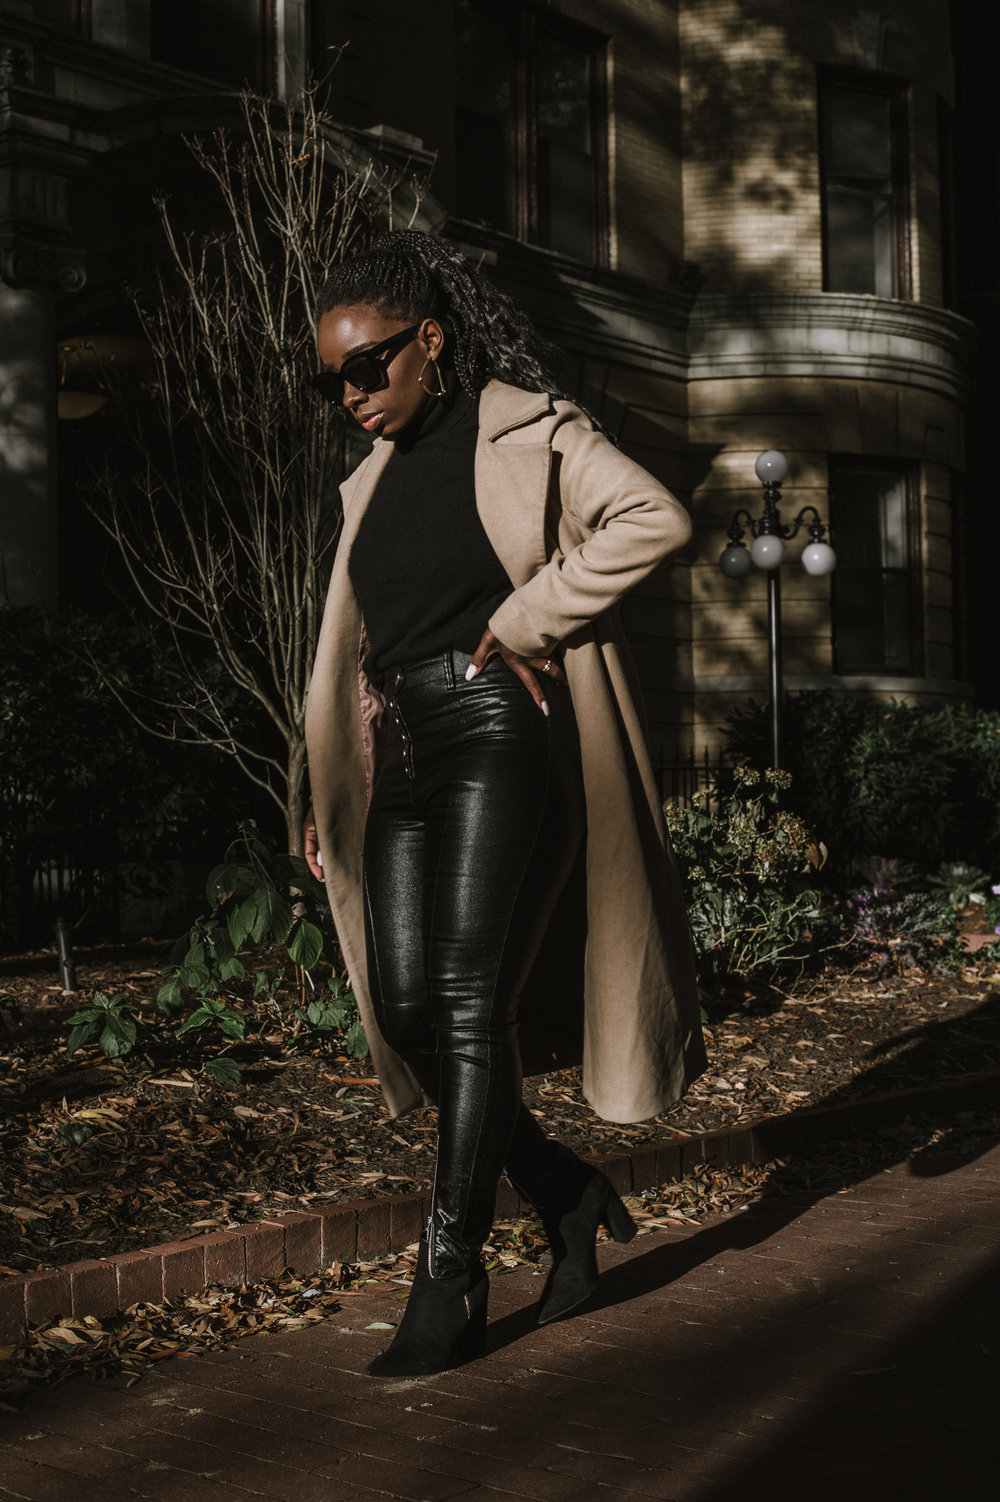 The-Glossier-Tasha-James-Fashion-Style-Blogger-DC-Winter-Coat-All-Black-34.jpg